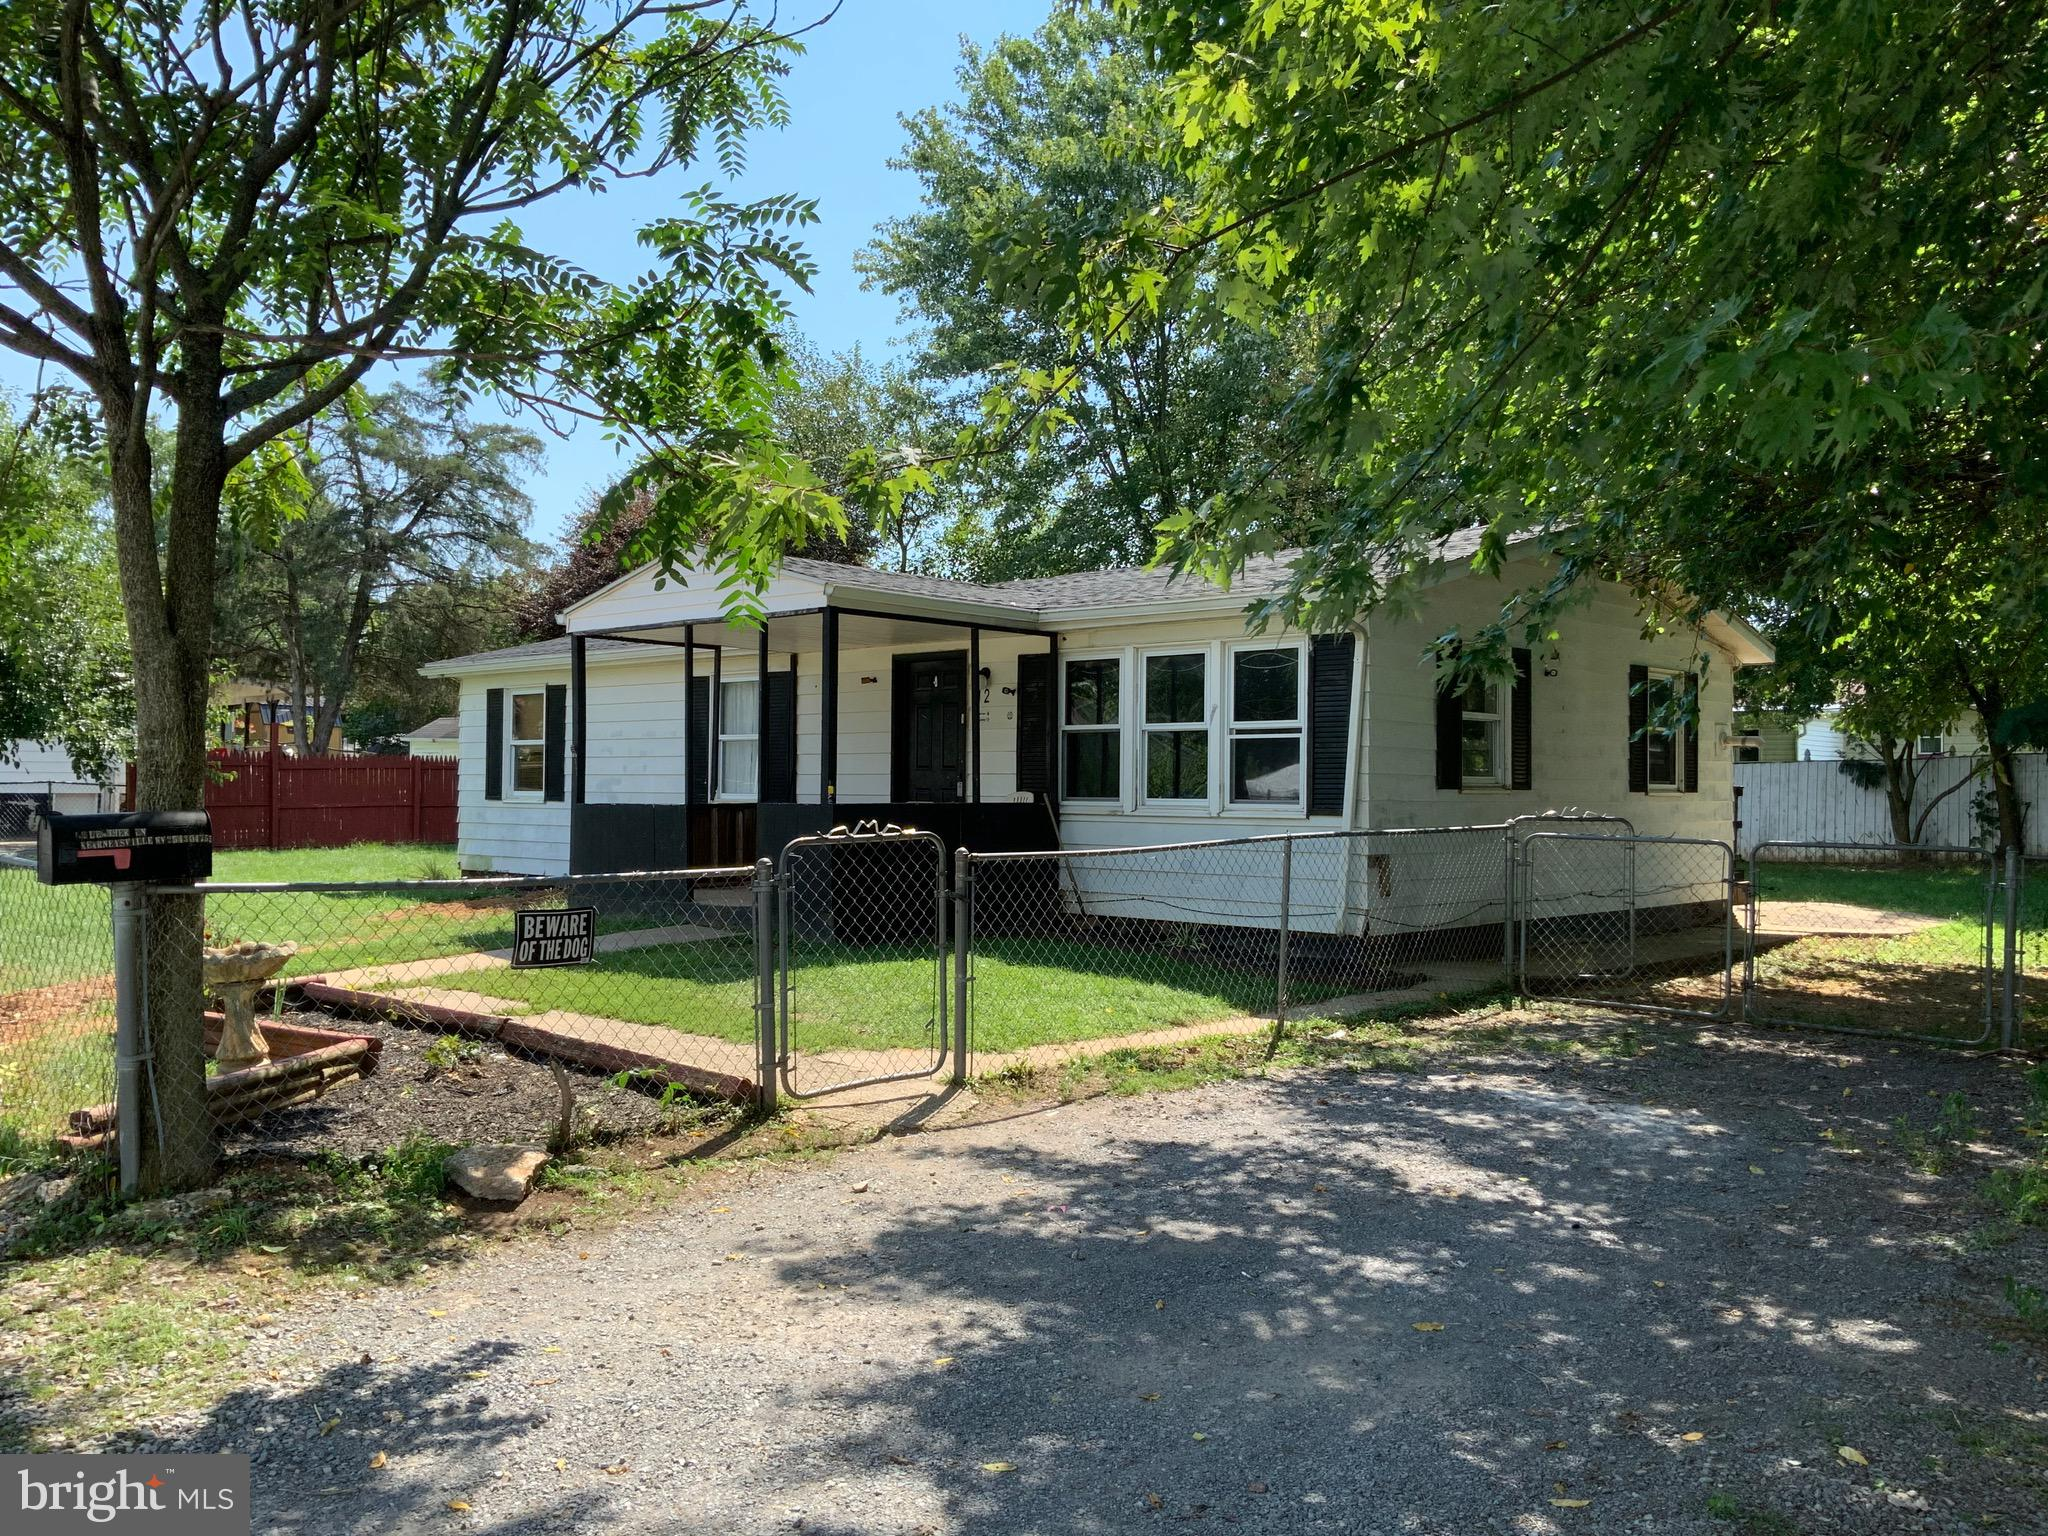 PENDING RELEASE. Affordable Rancher featuring 3 bedrooms, front porch, rear deck, fully fenced yard,